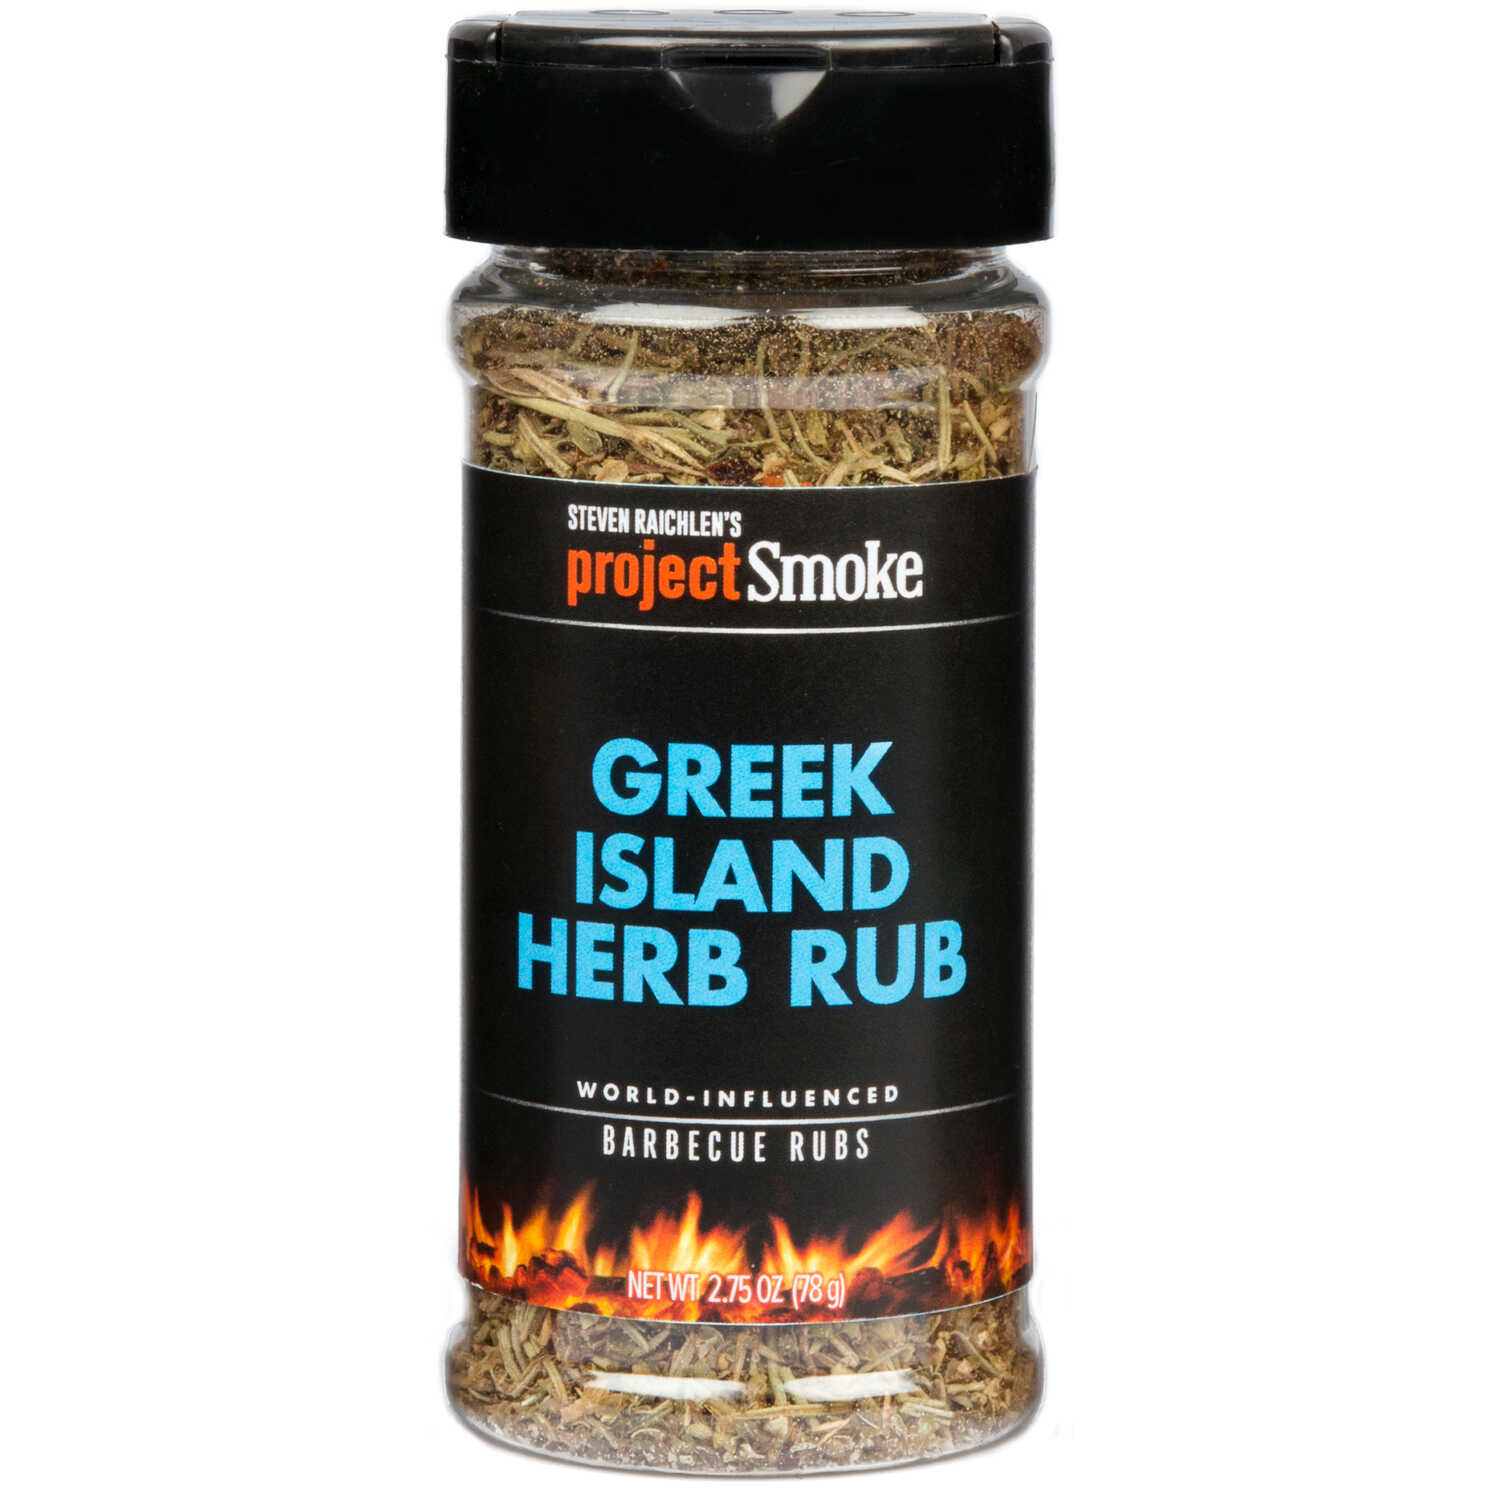 Steven Raichlen Project Smoke  Greek Island Herb  BBQ Rub  2.75 oz.